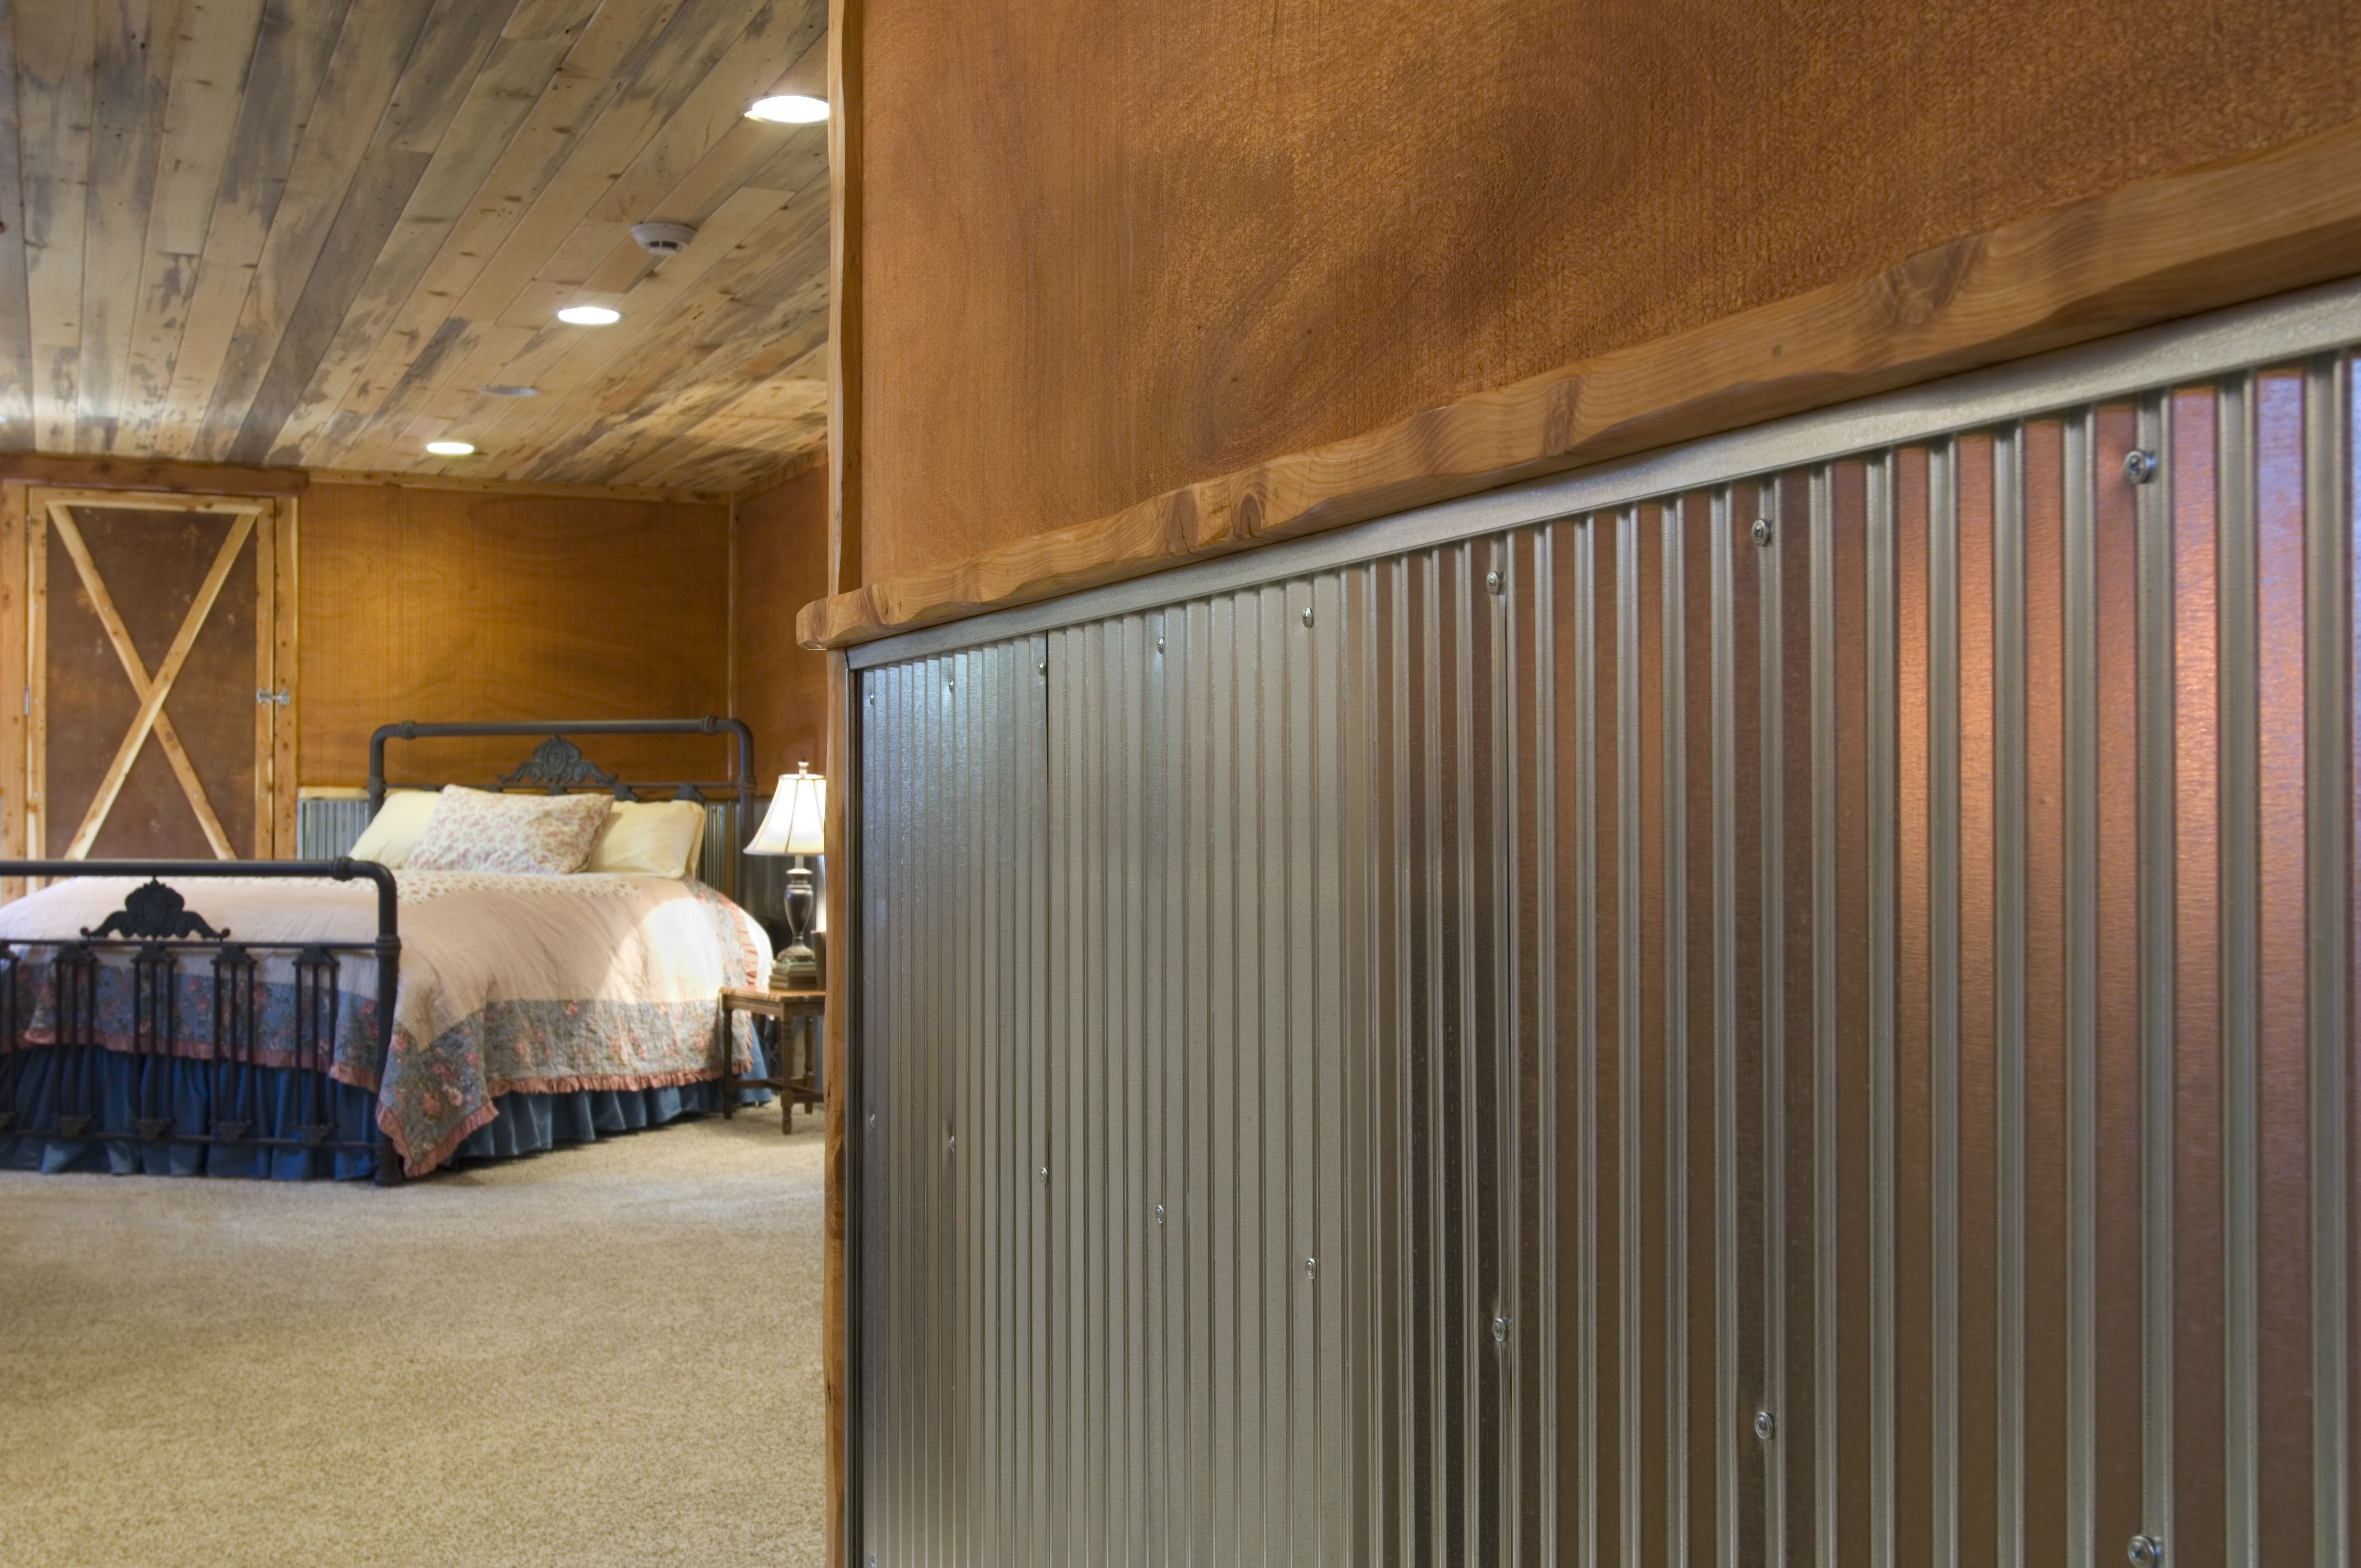 Corrugated Steel Chair Rail Swing Glass Metal For Interior Walls Wainscot 1 4 Panel In Galvanized